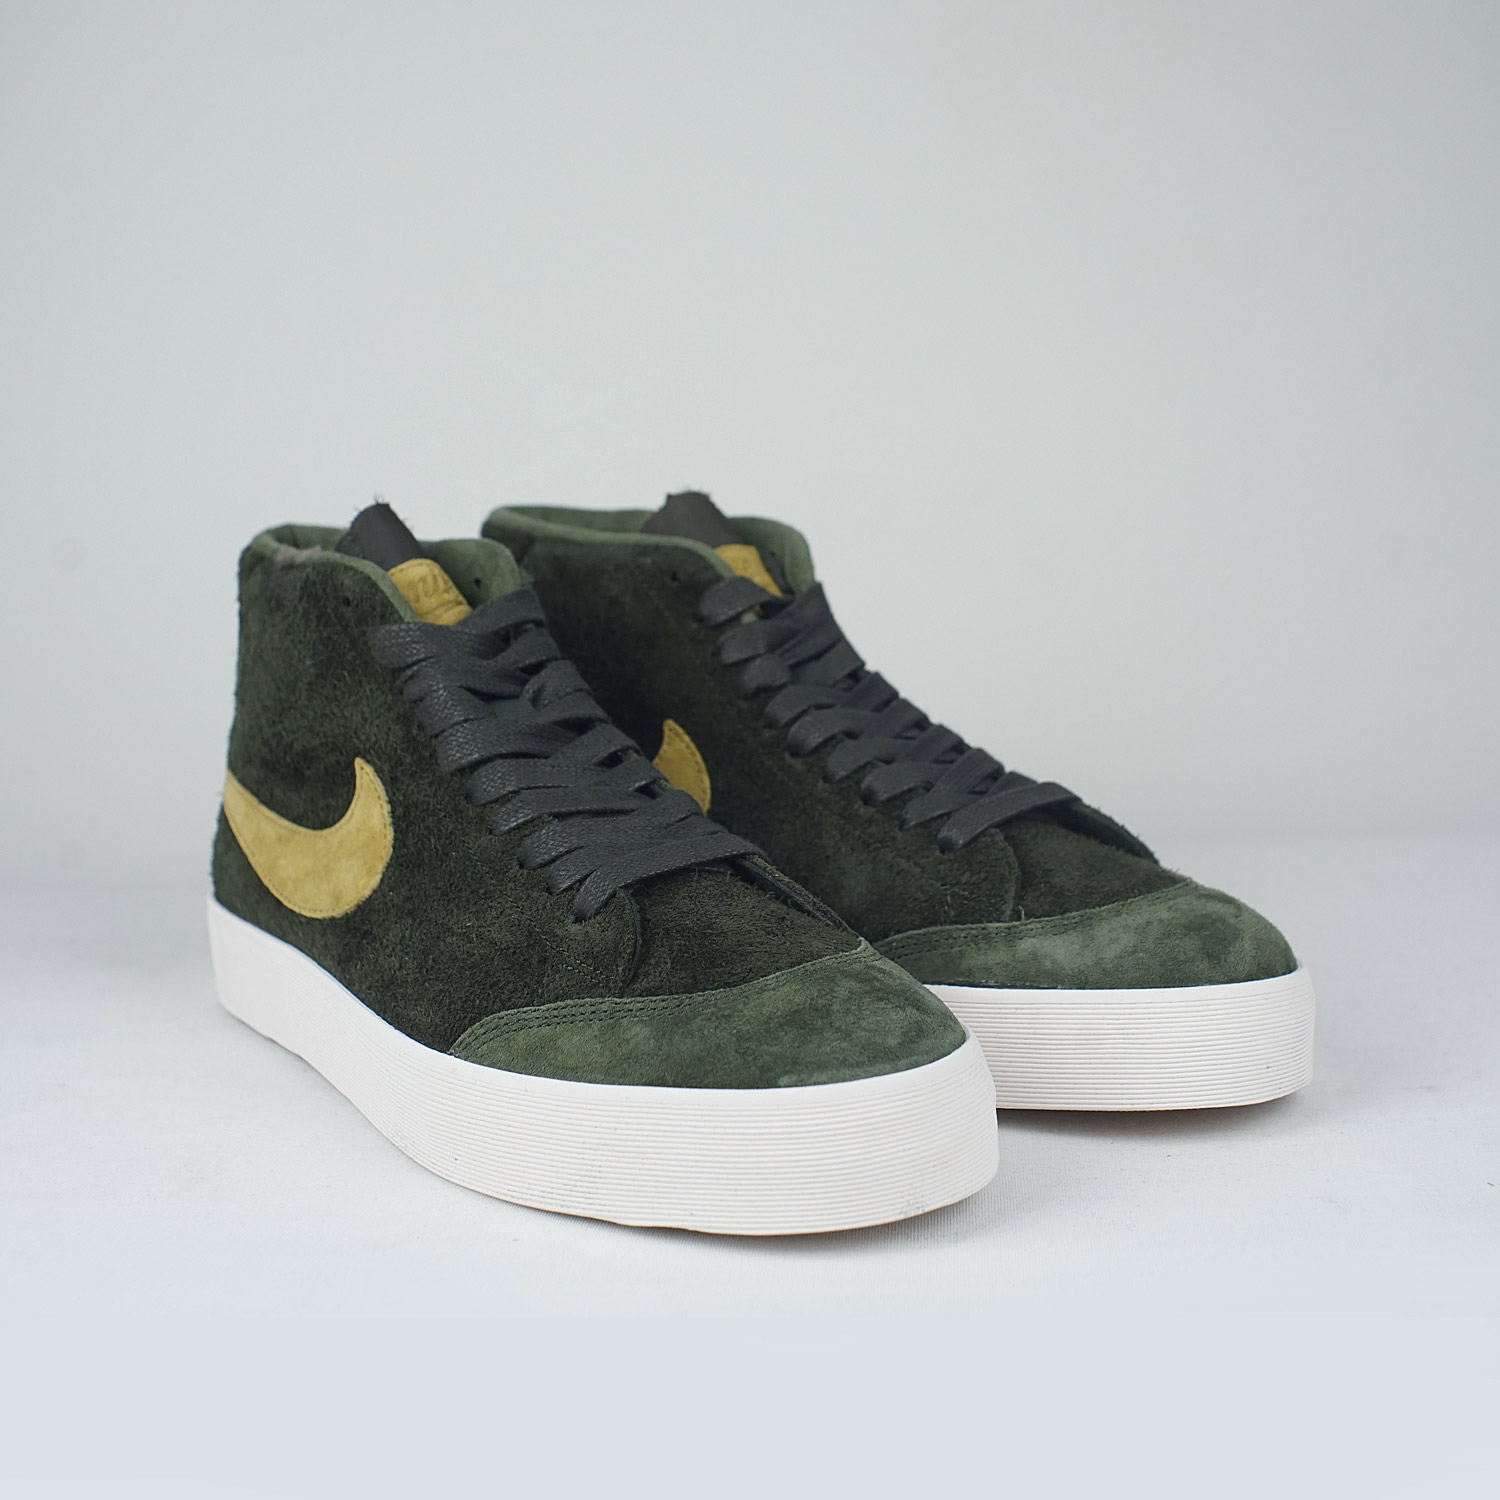 buy popular fc850 405d7 czech nike blazer green gold 8914f 784ef